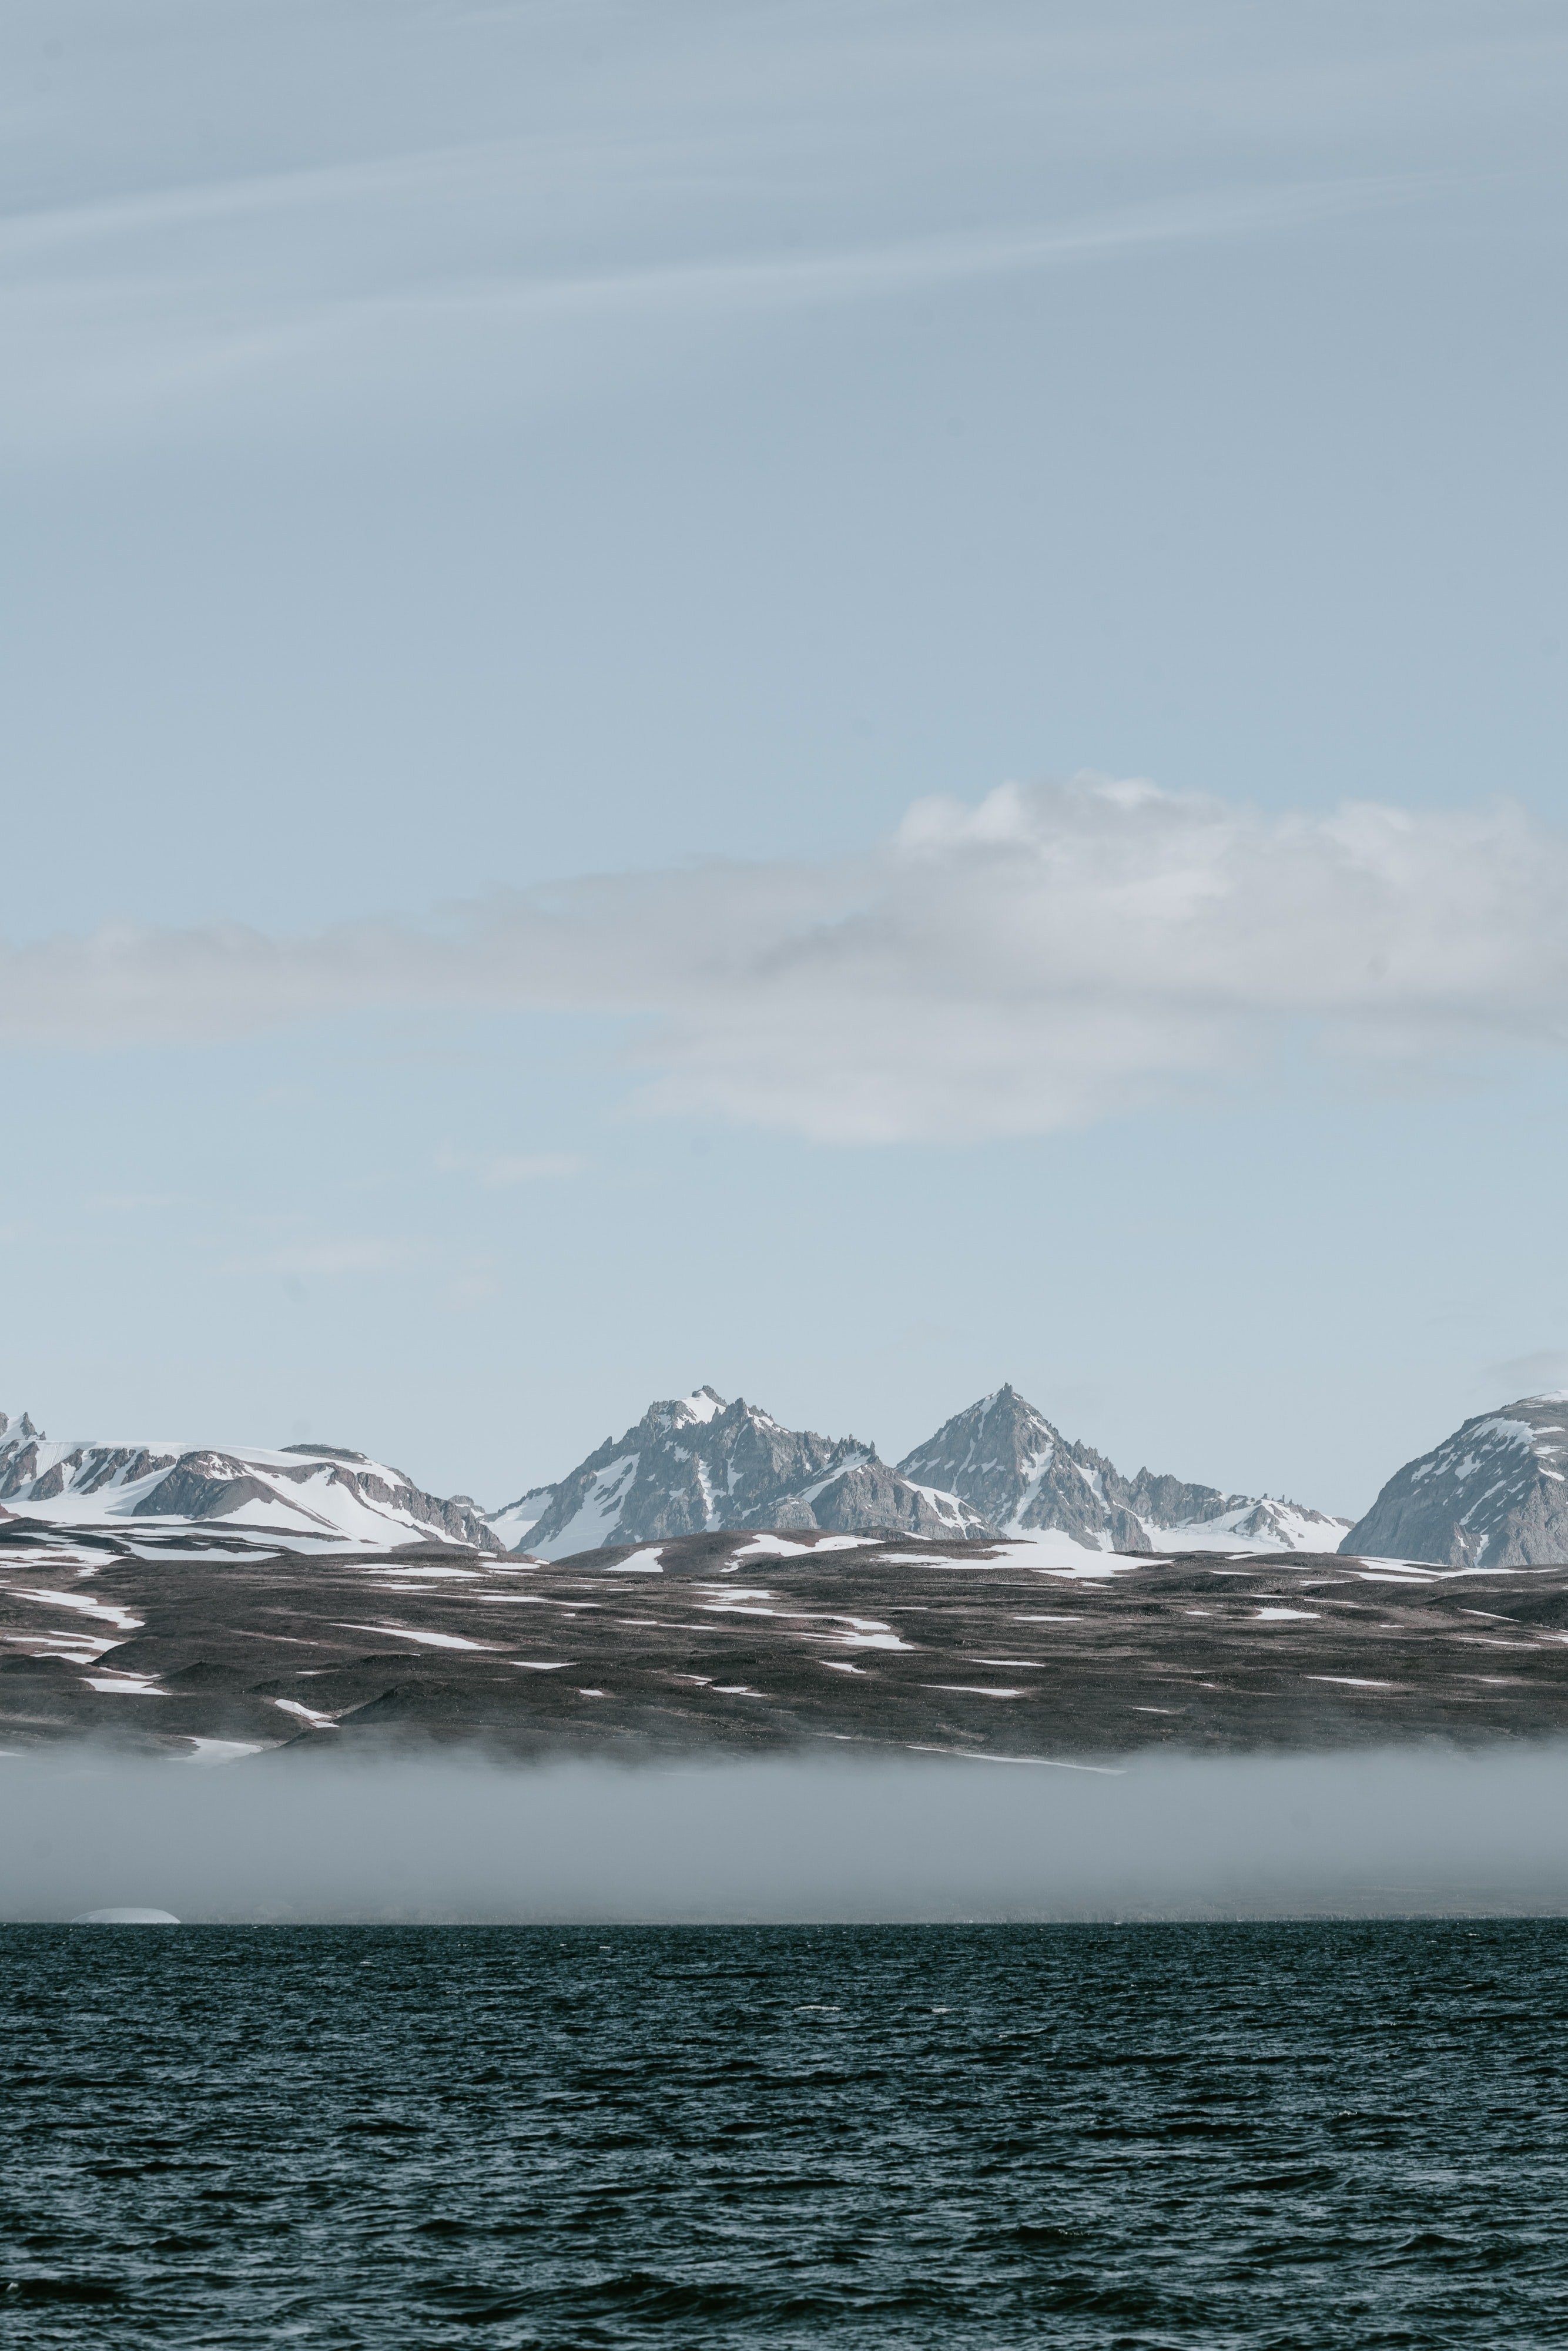 mountains beside body of water